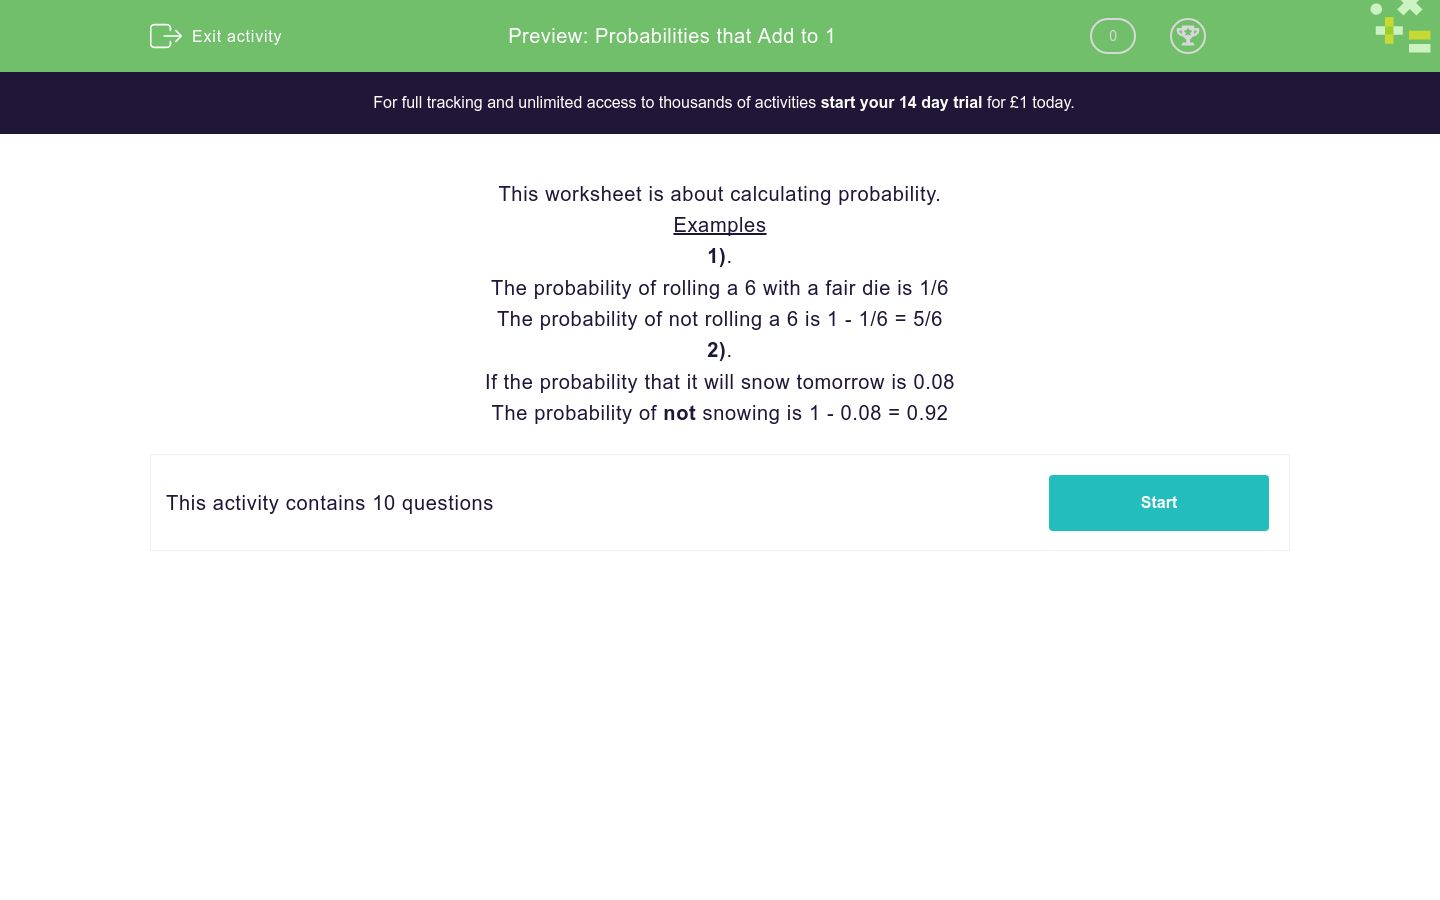 'Probabilities that Add to 1' worksheet